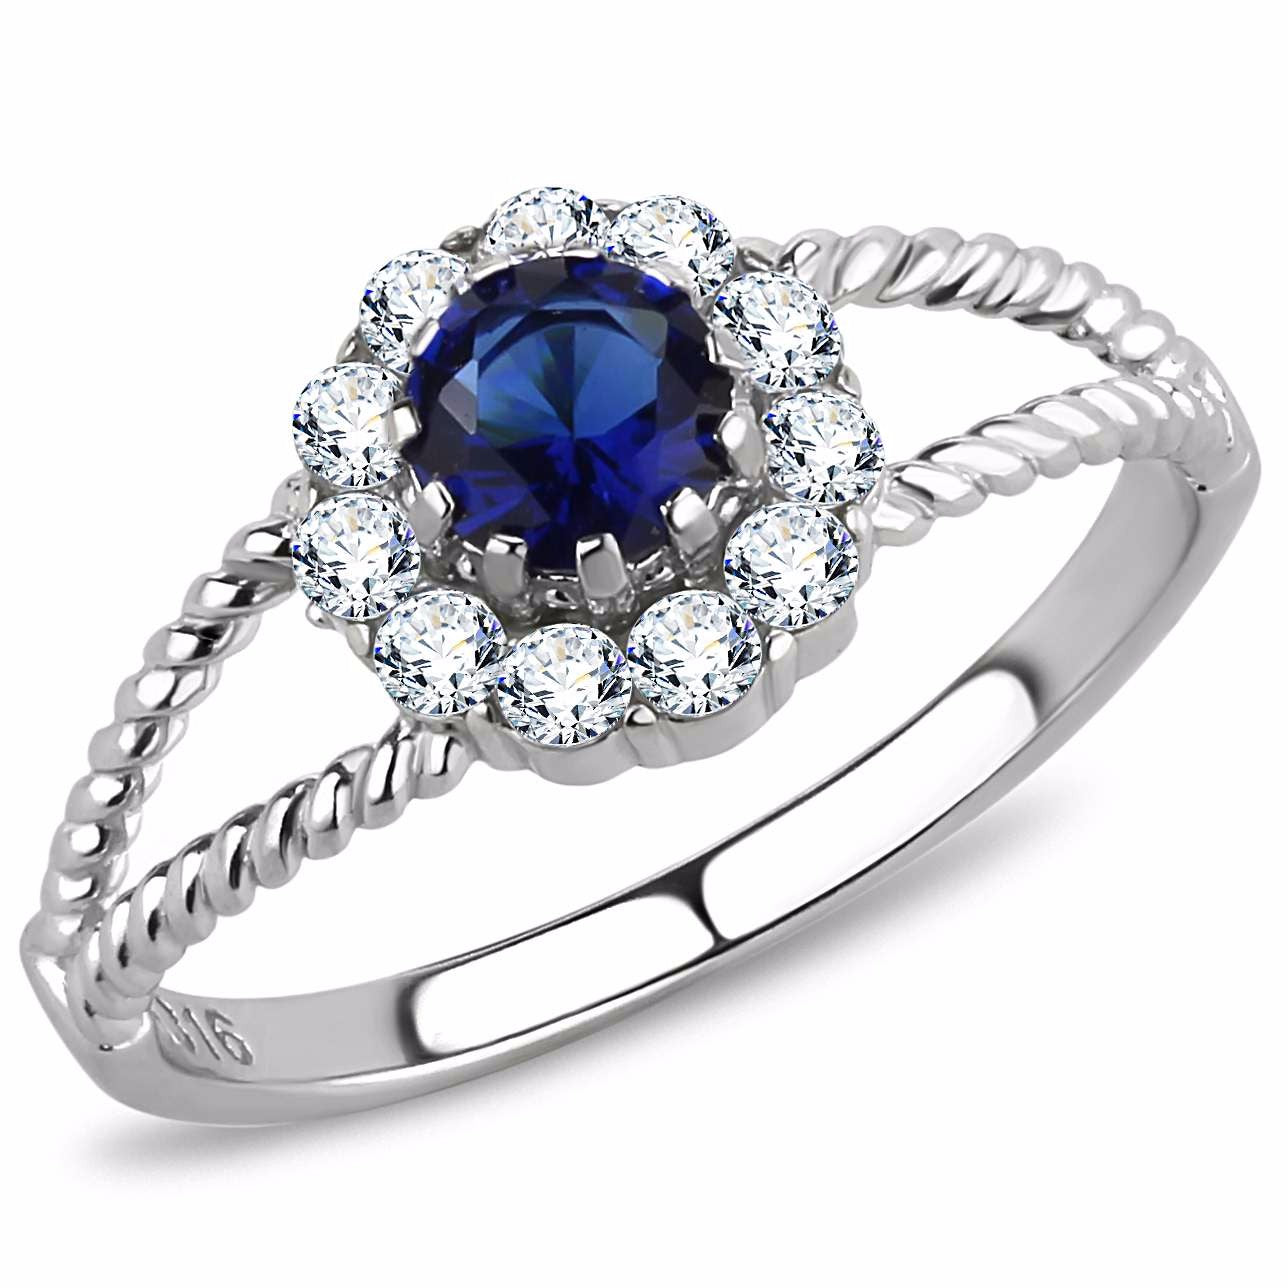 Women's 5x5mm Round Cut Sapphire CZ Center Stainless Steel Cocktail Ring - LA NY Jewelry